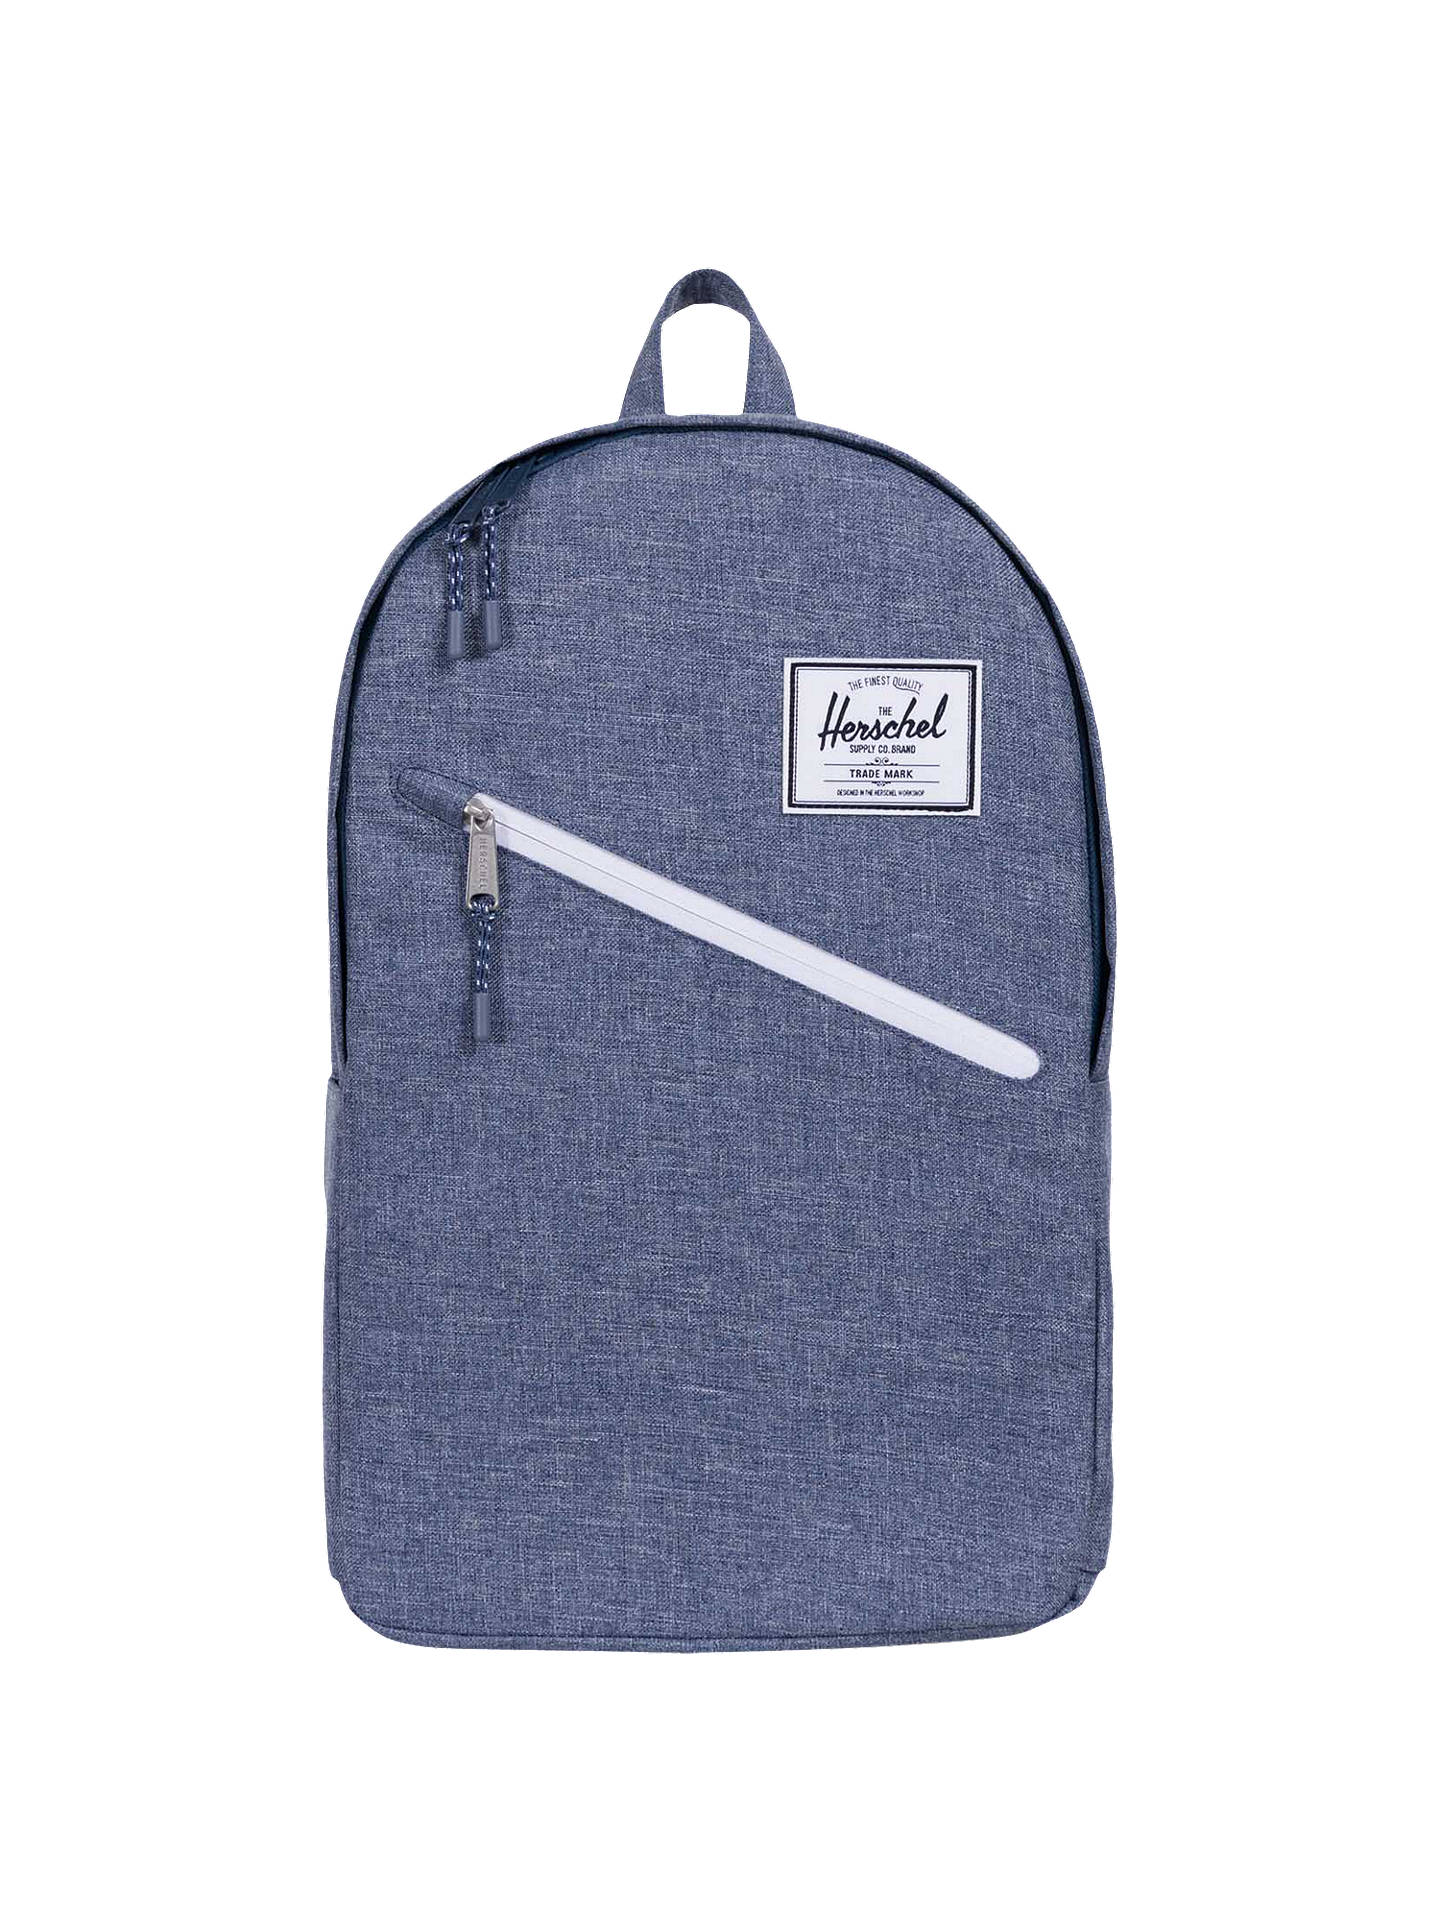 6f40f3fbfc4 Buy Herschel Supply Co. Parker Backpack